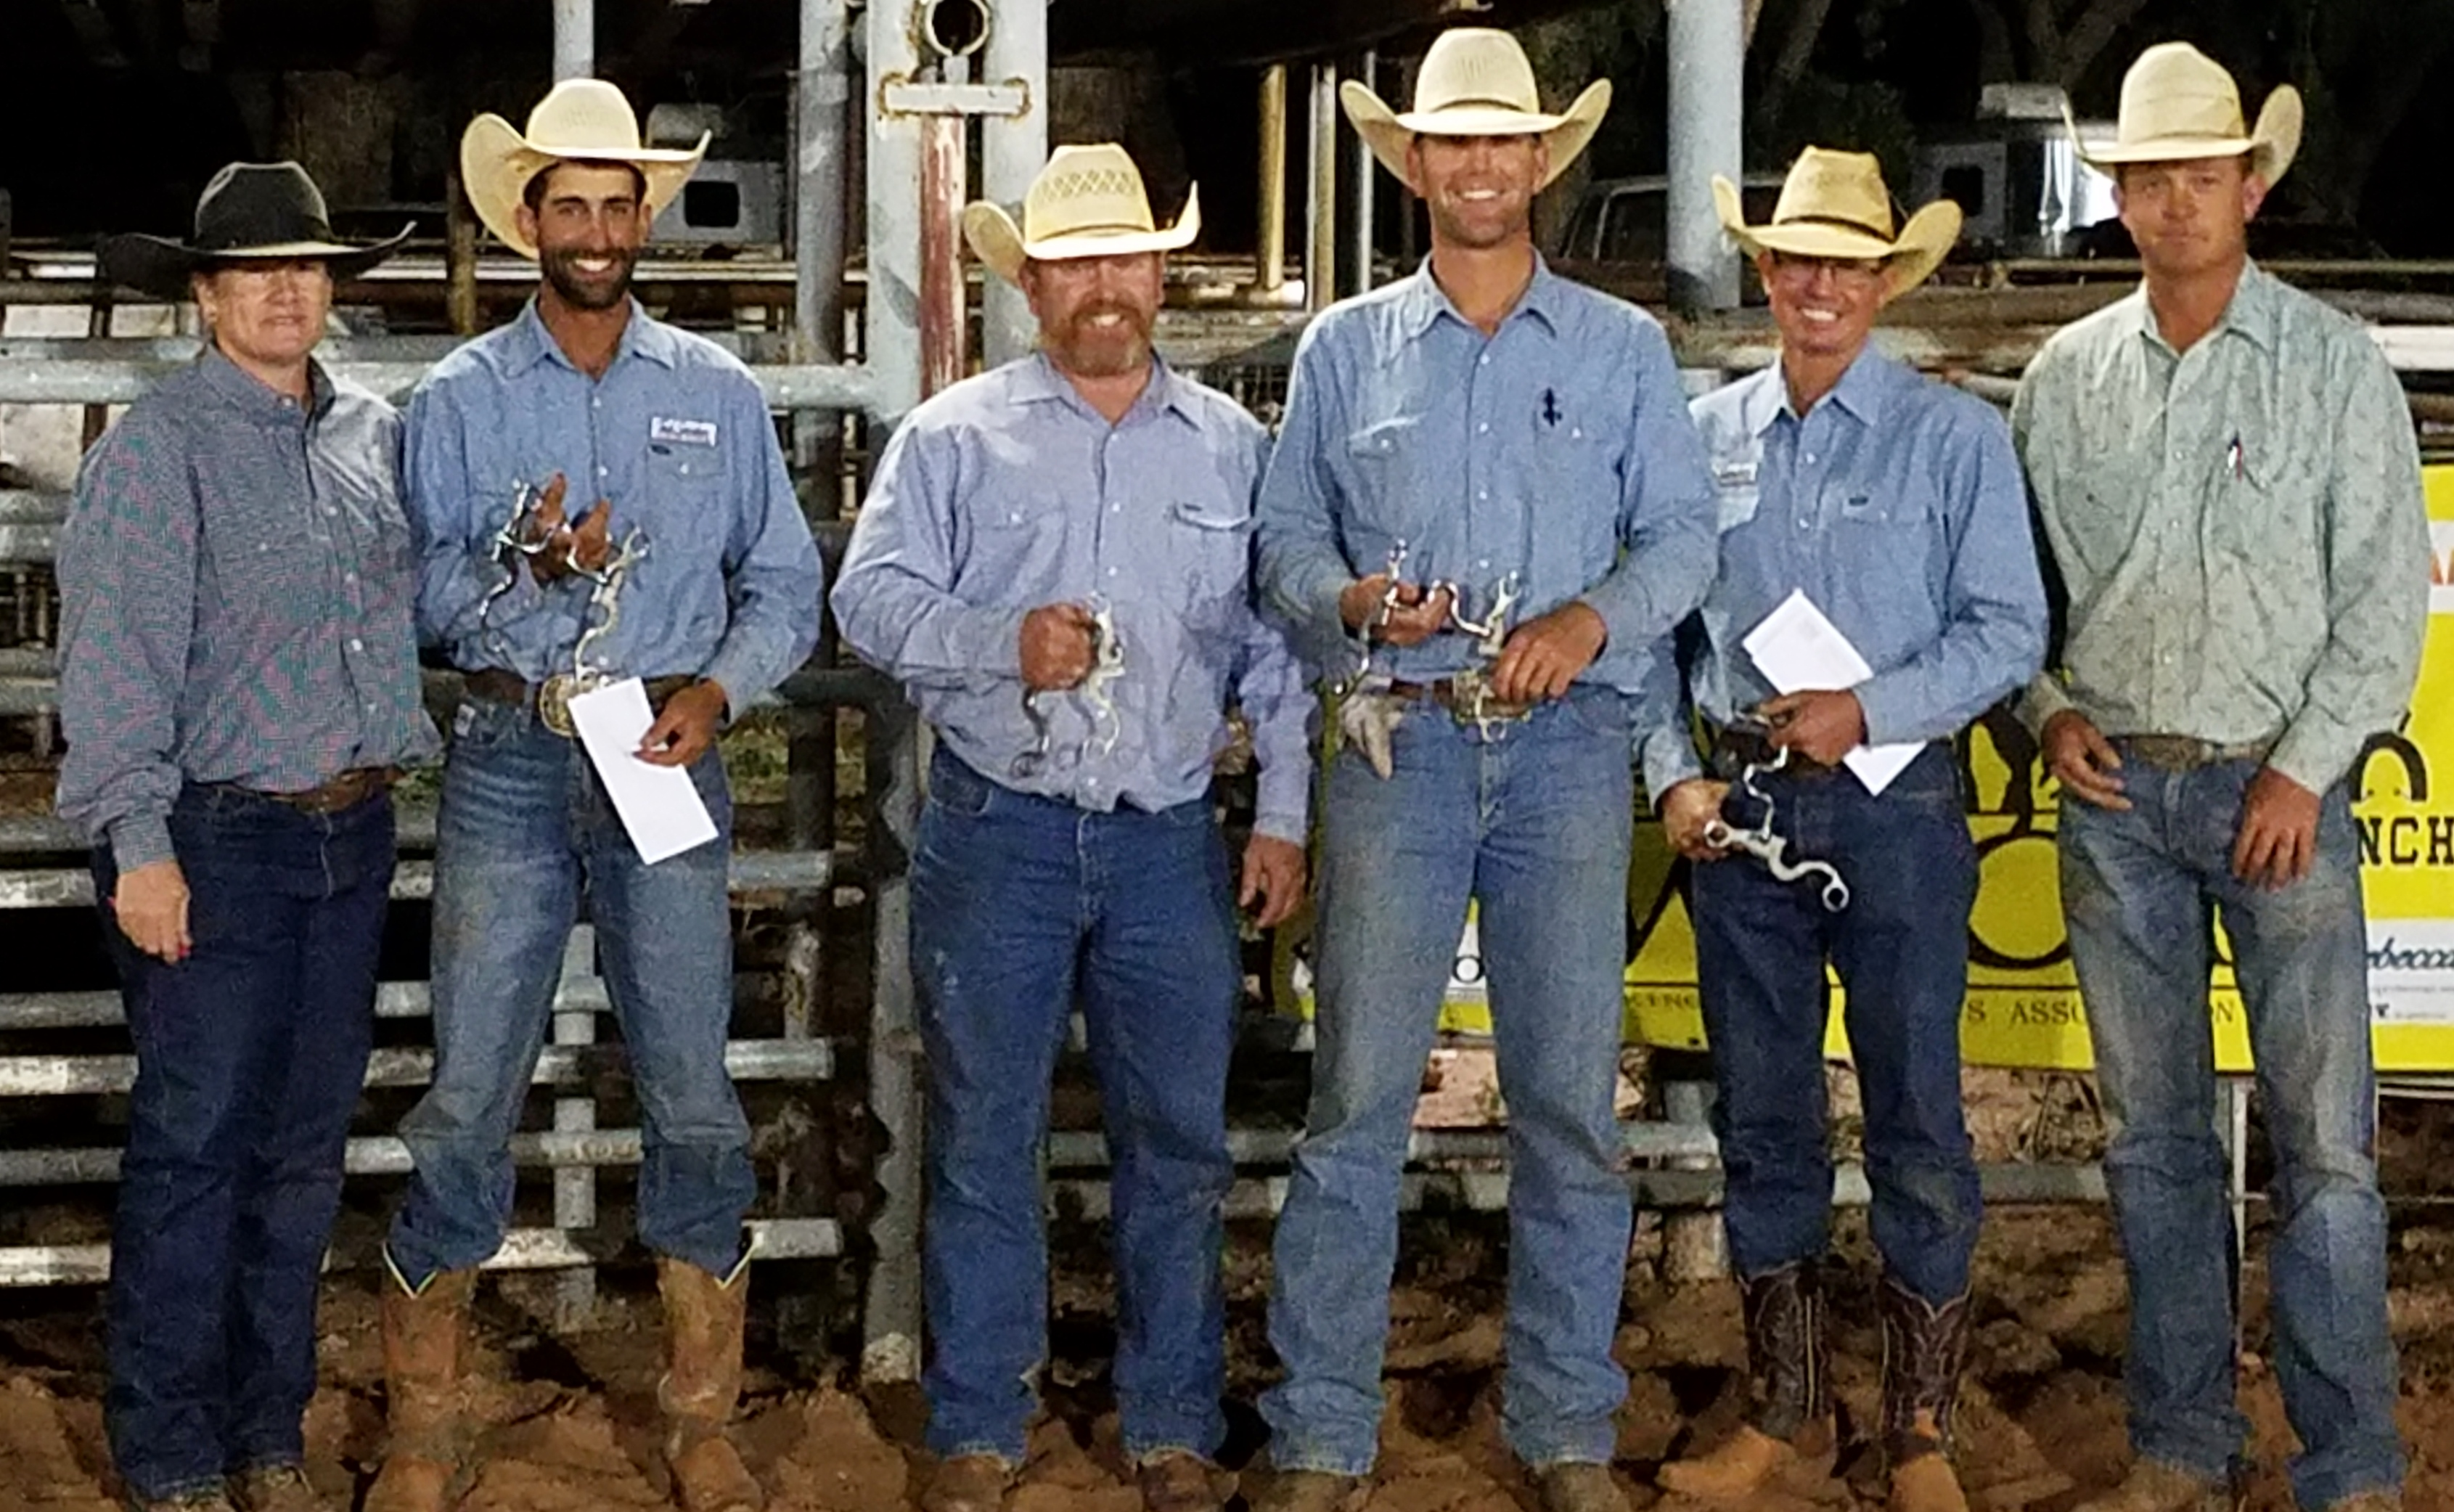 2017 Fort Sumner Winning Ranch Team Sandhill Cattle Co